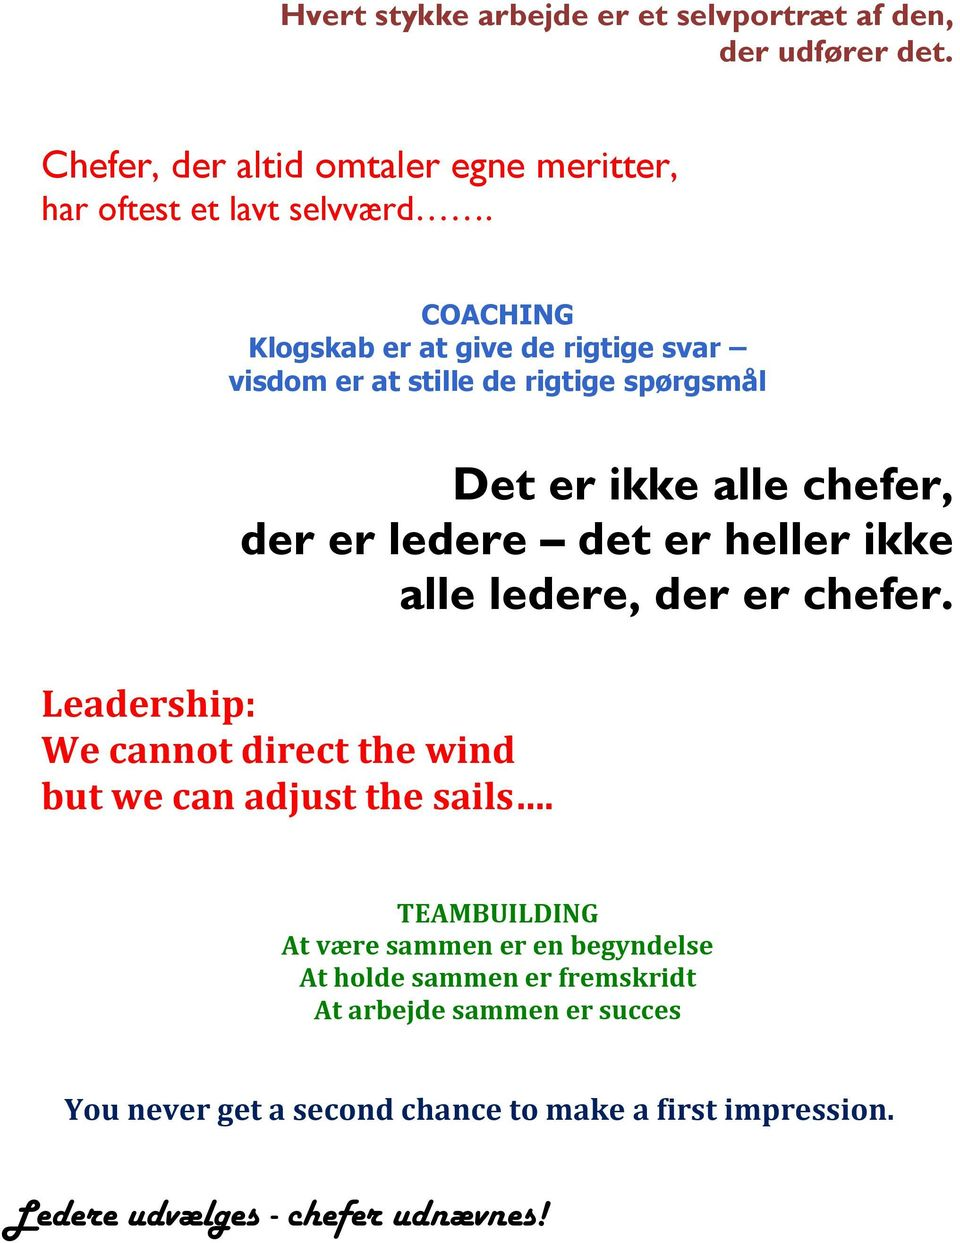 ikke alle ledere, der er chefer. Leadership: We cannot direct the wind but we can adjust the sails.